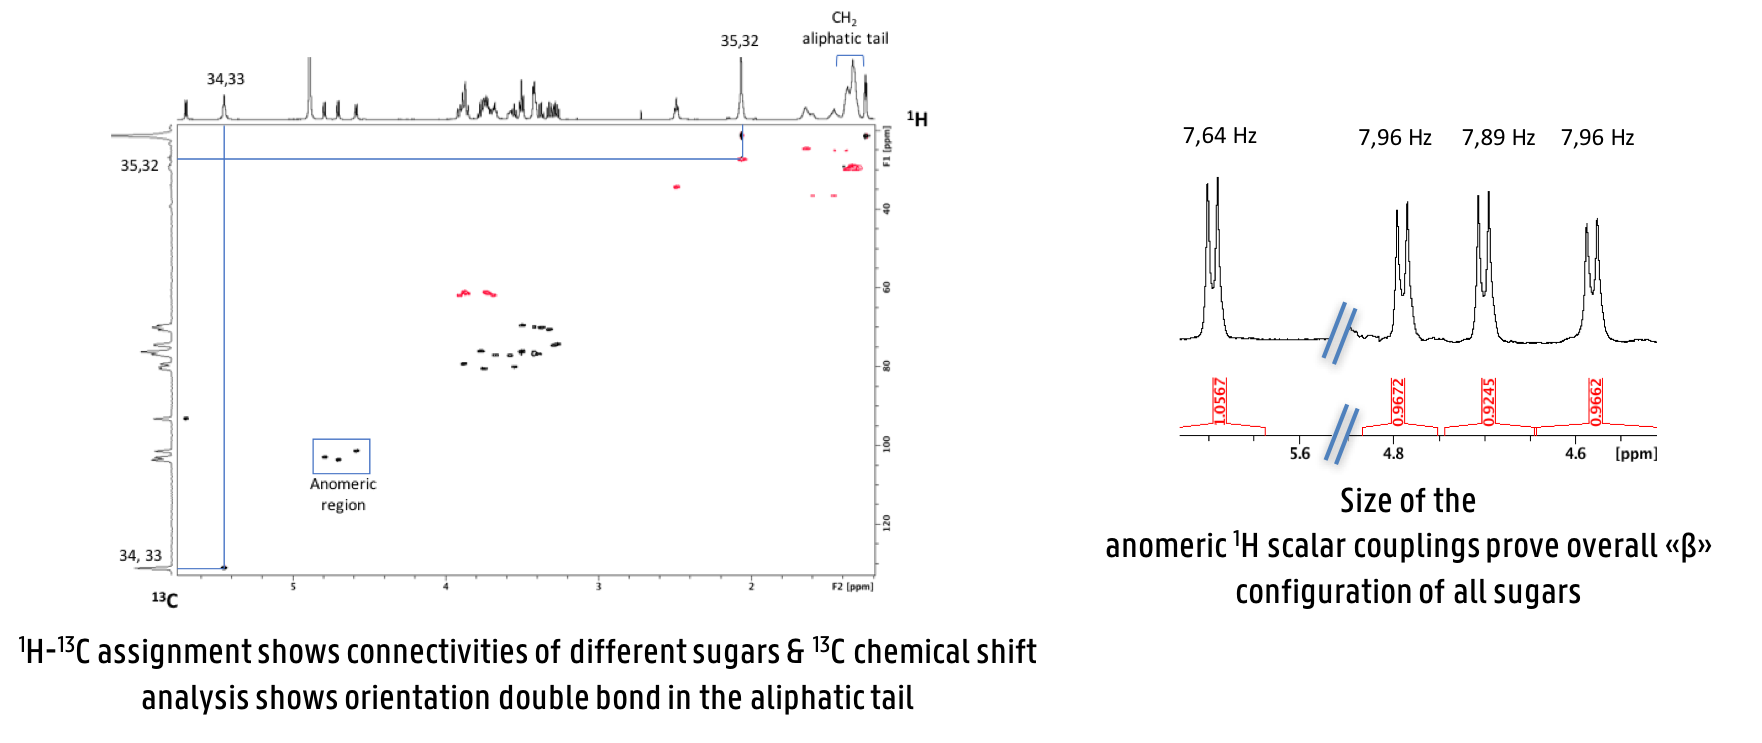 NMR data used in the analysis of the bolaform surfactant